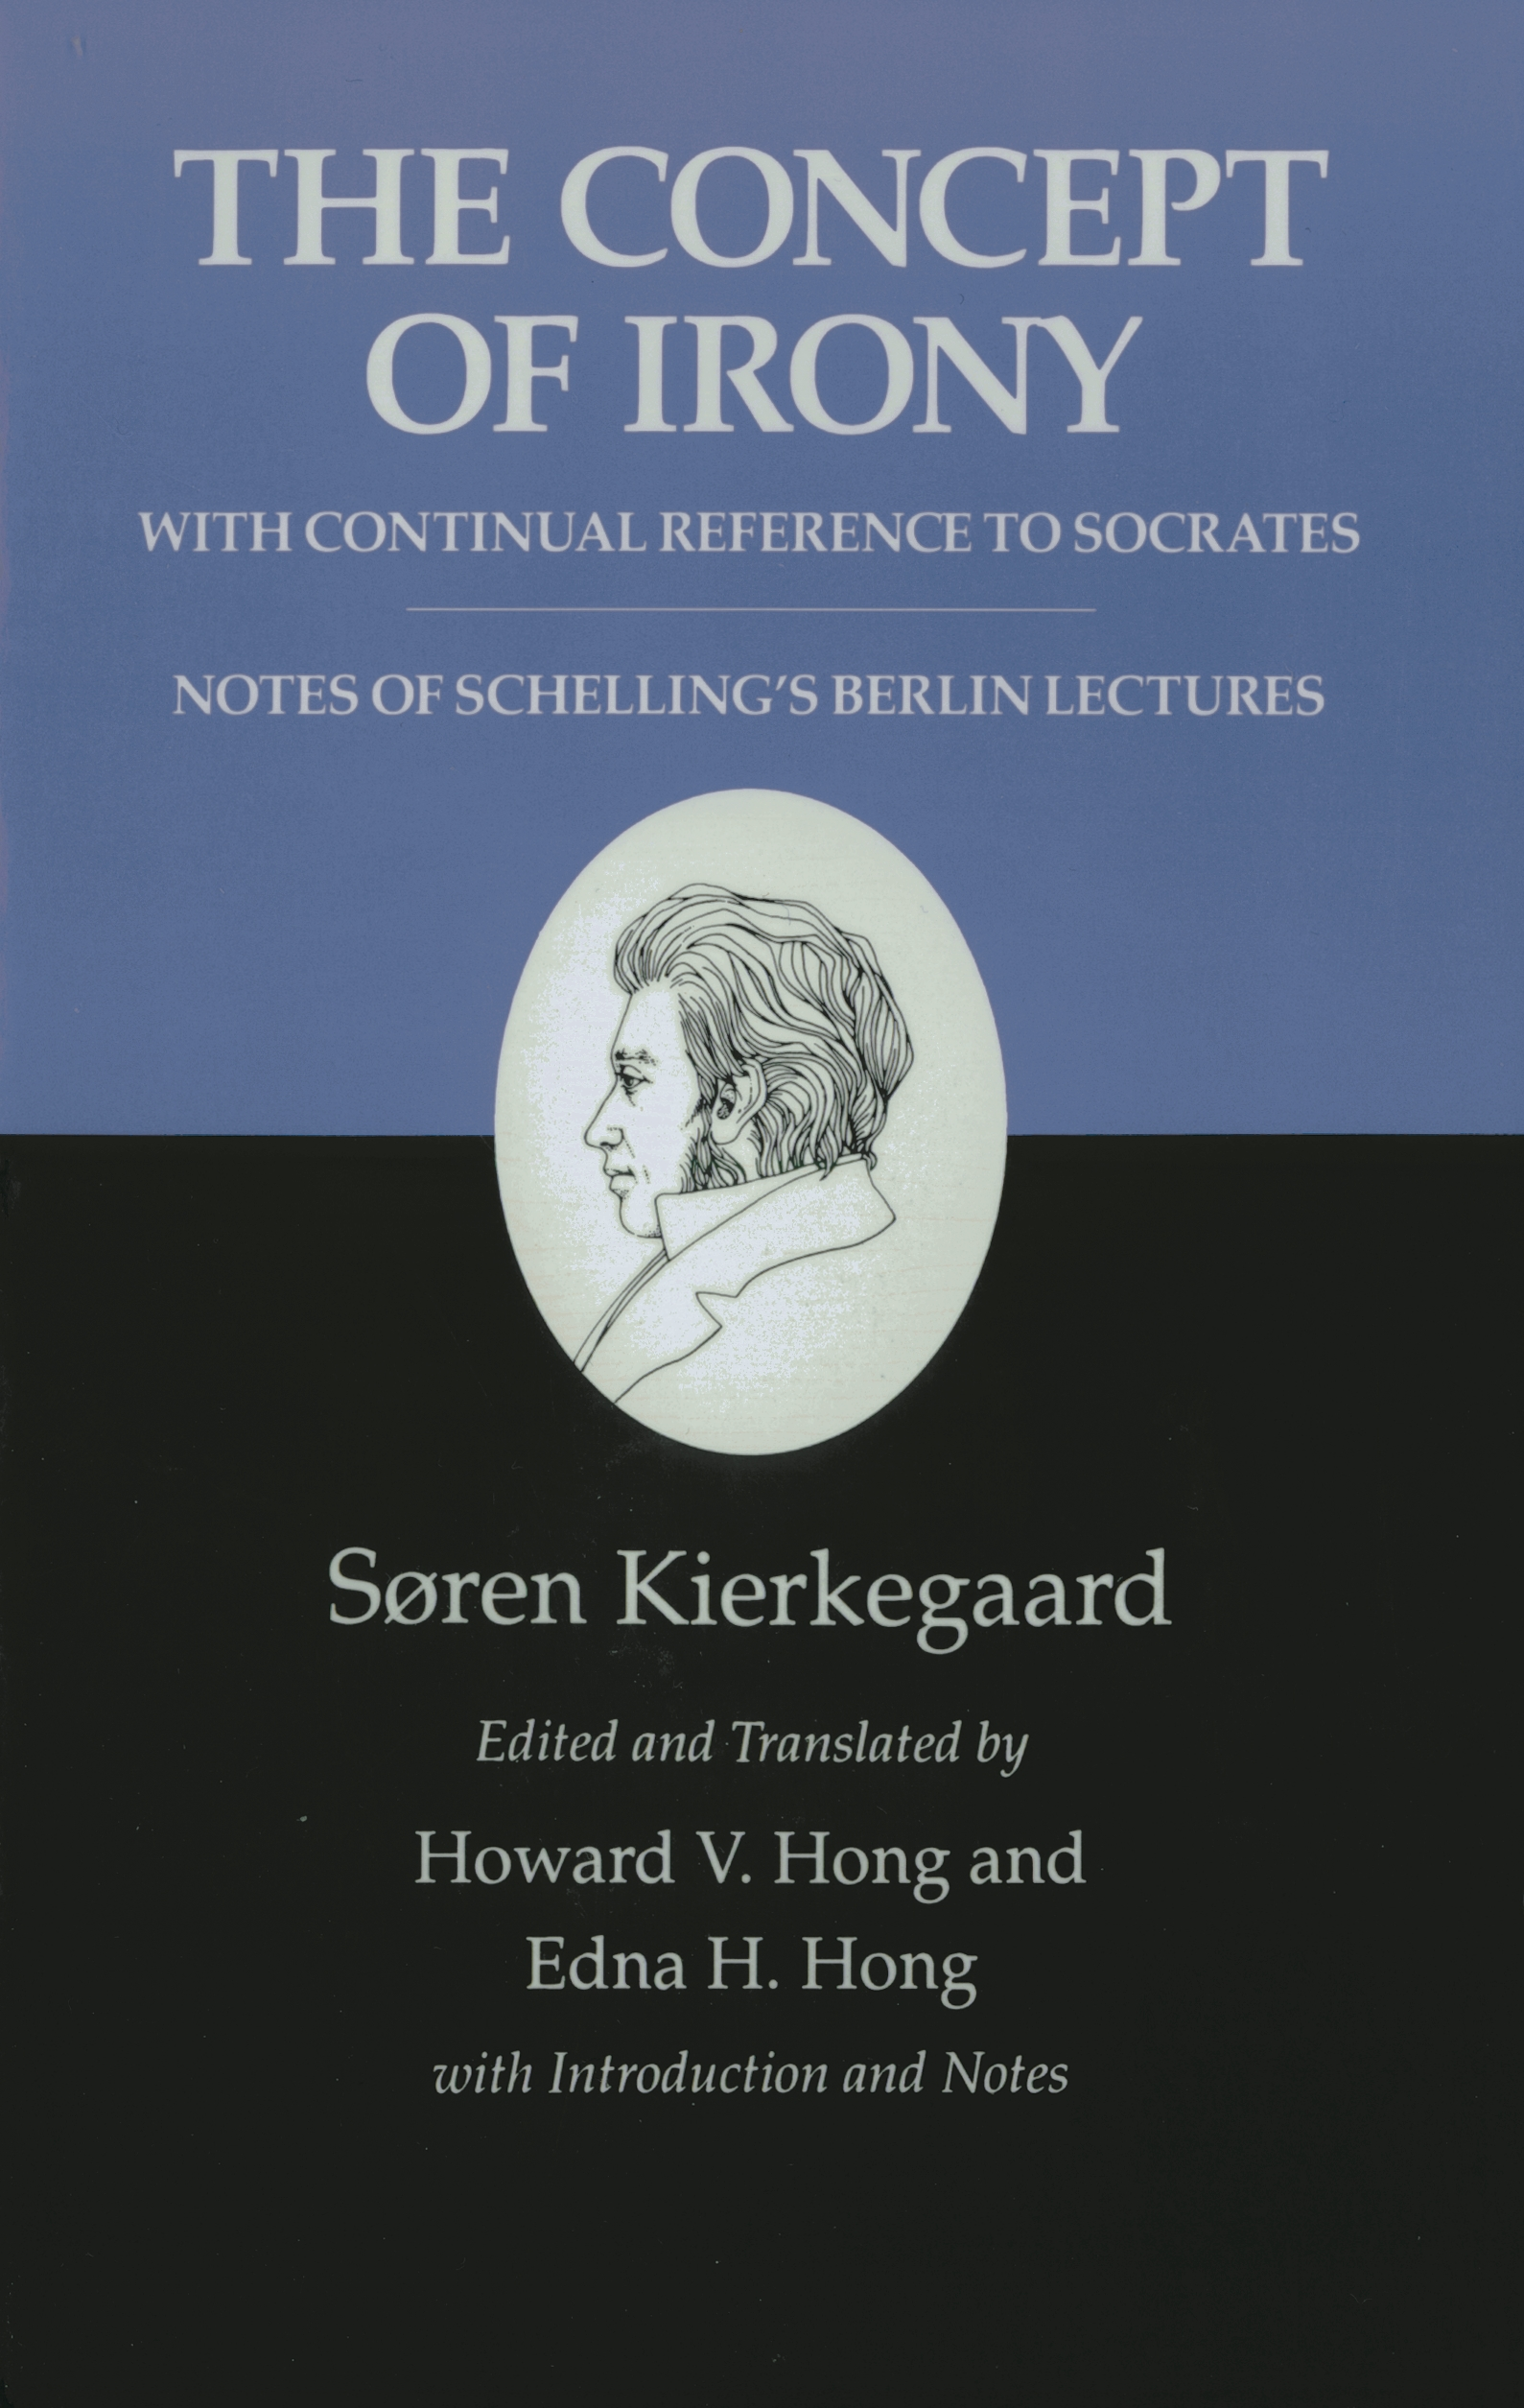 Kierkegaard's Writings, II